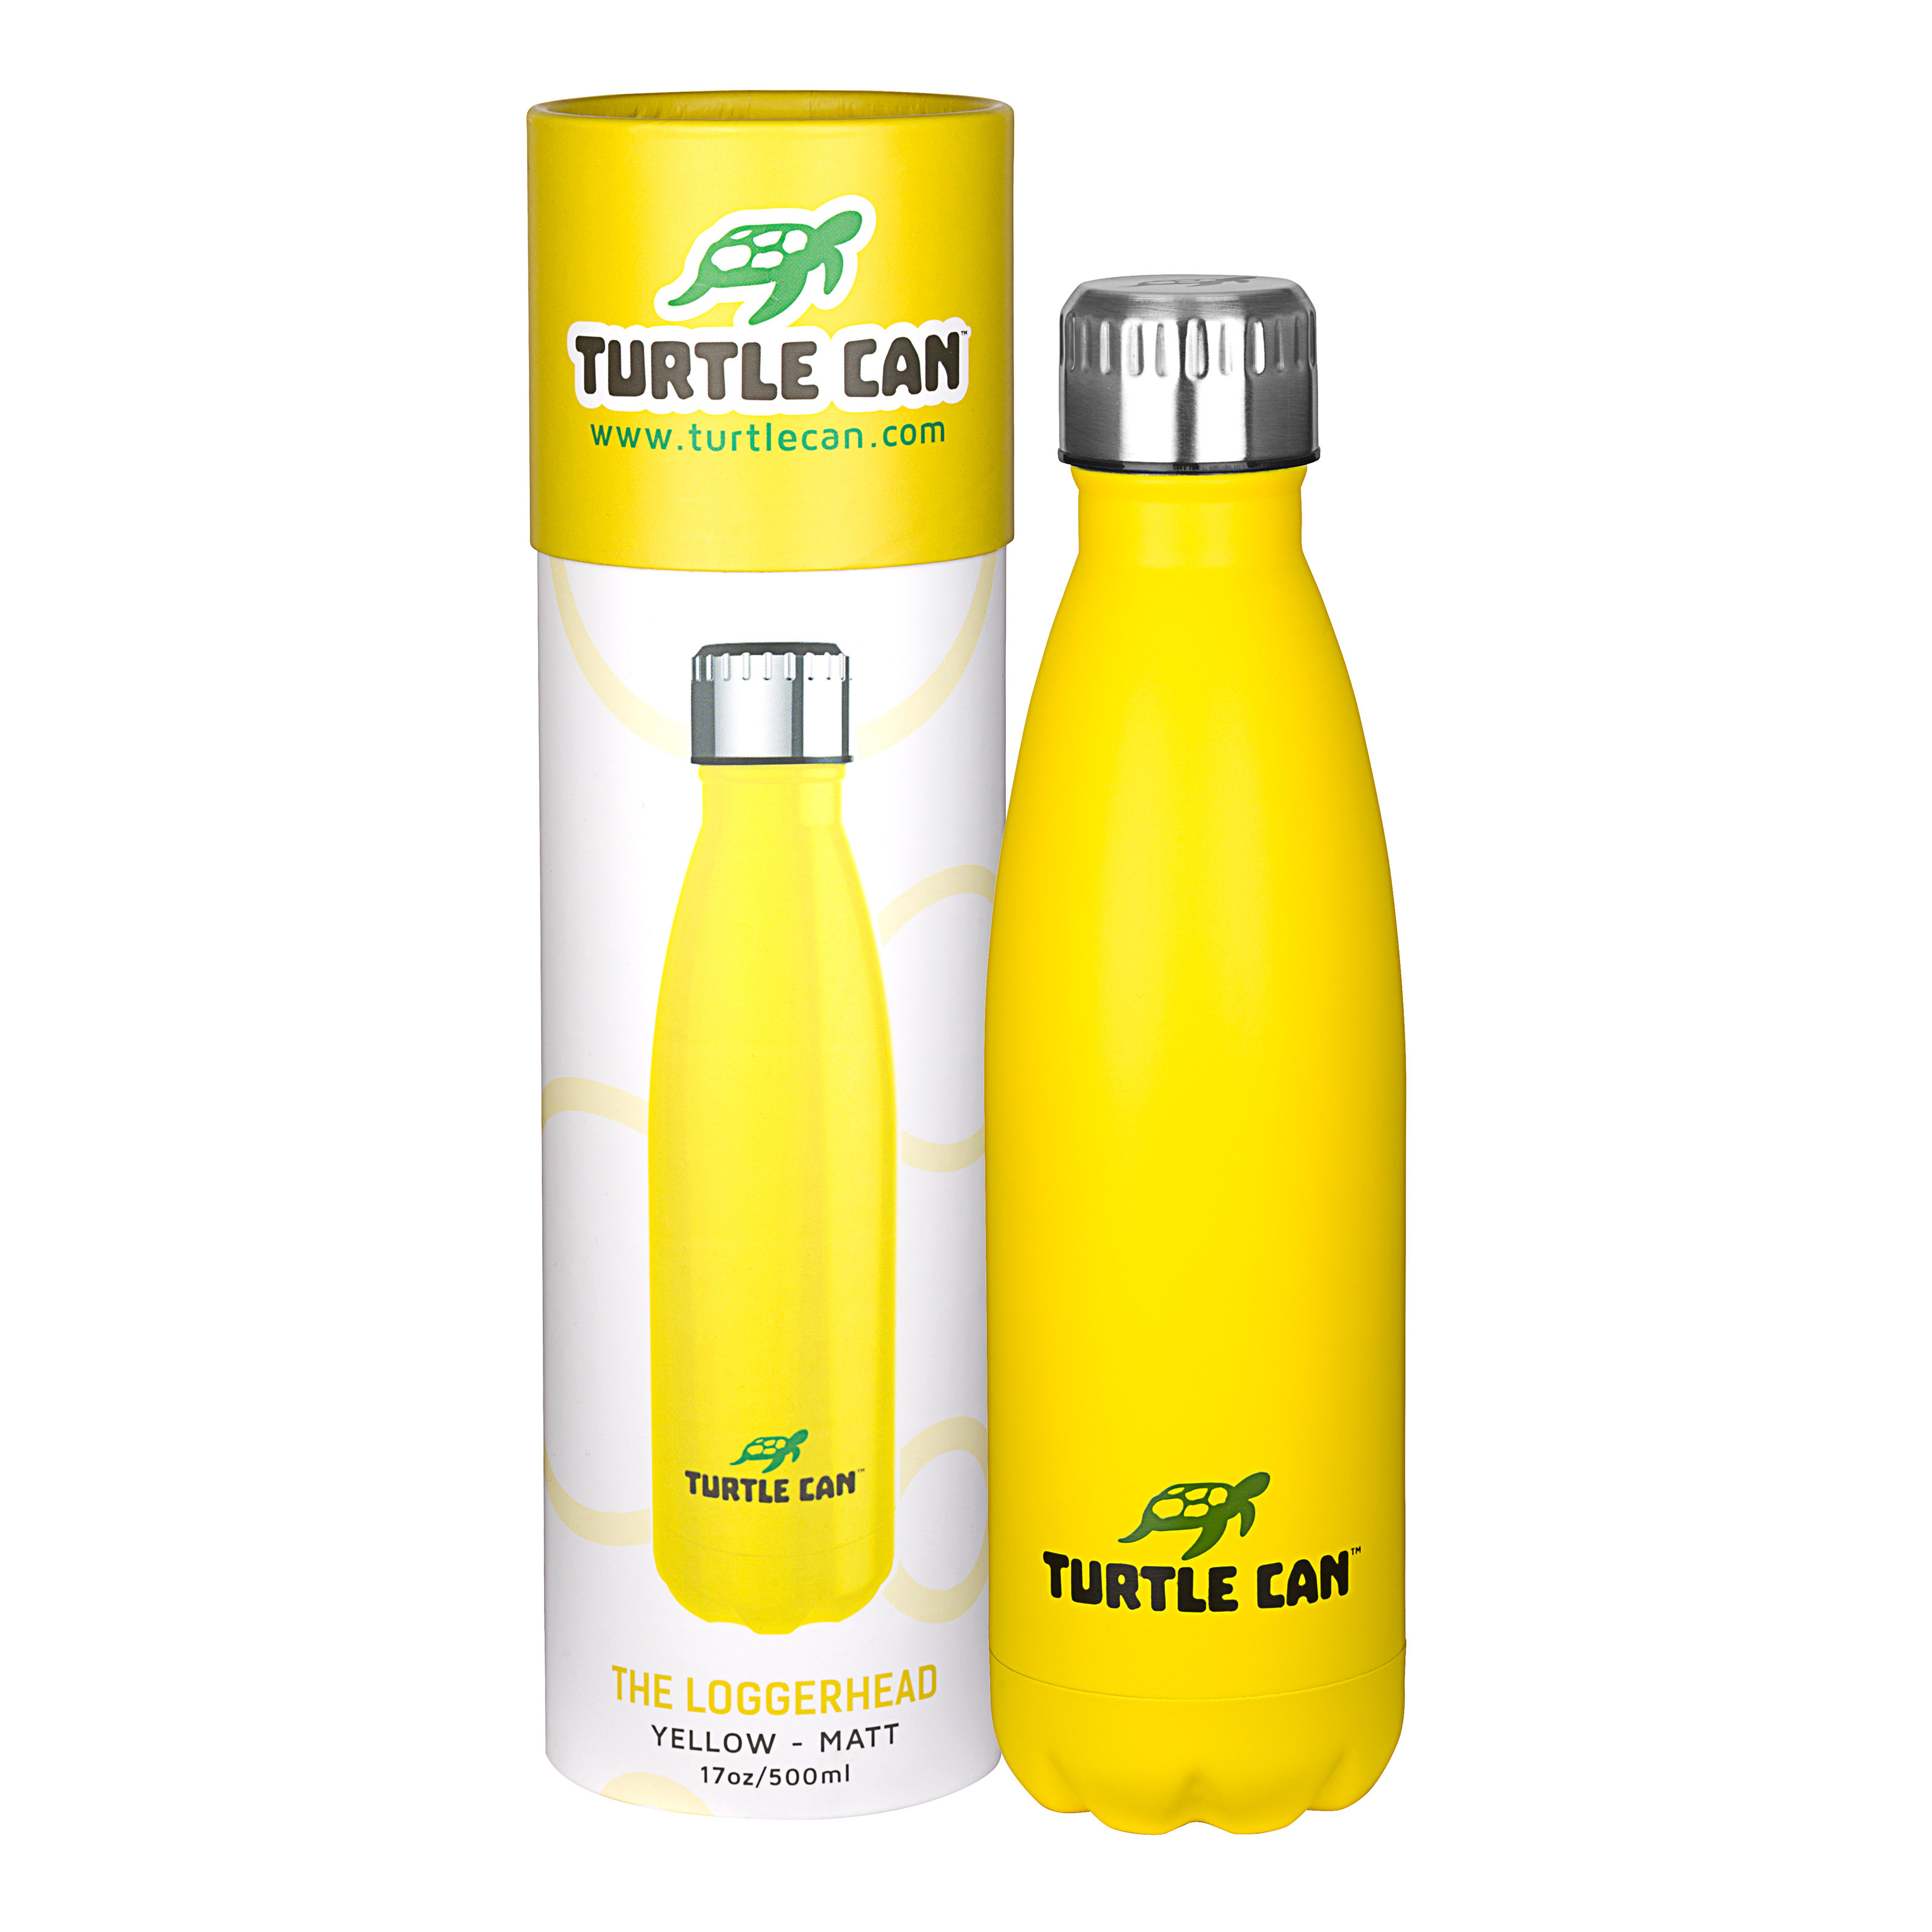 Turtle Can Insulated Bottle